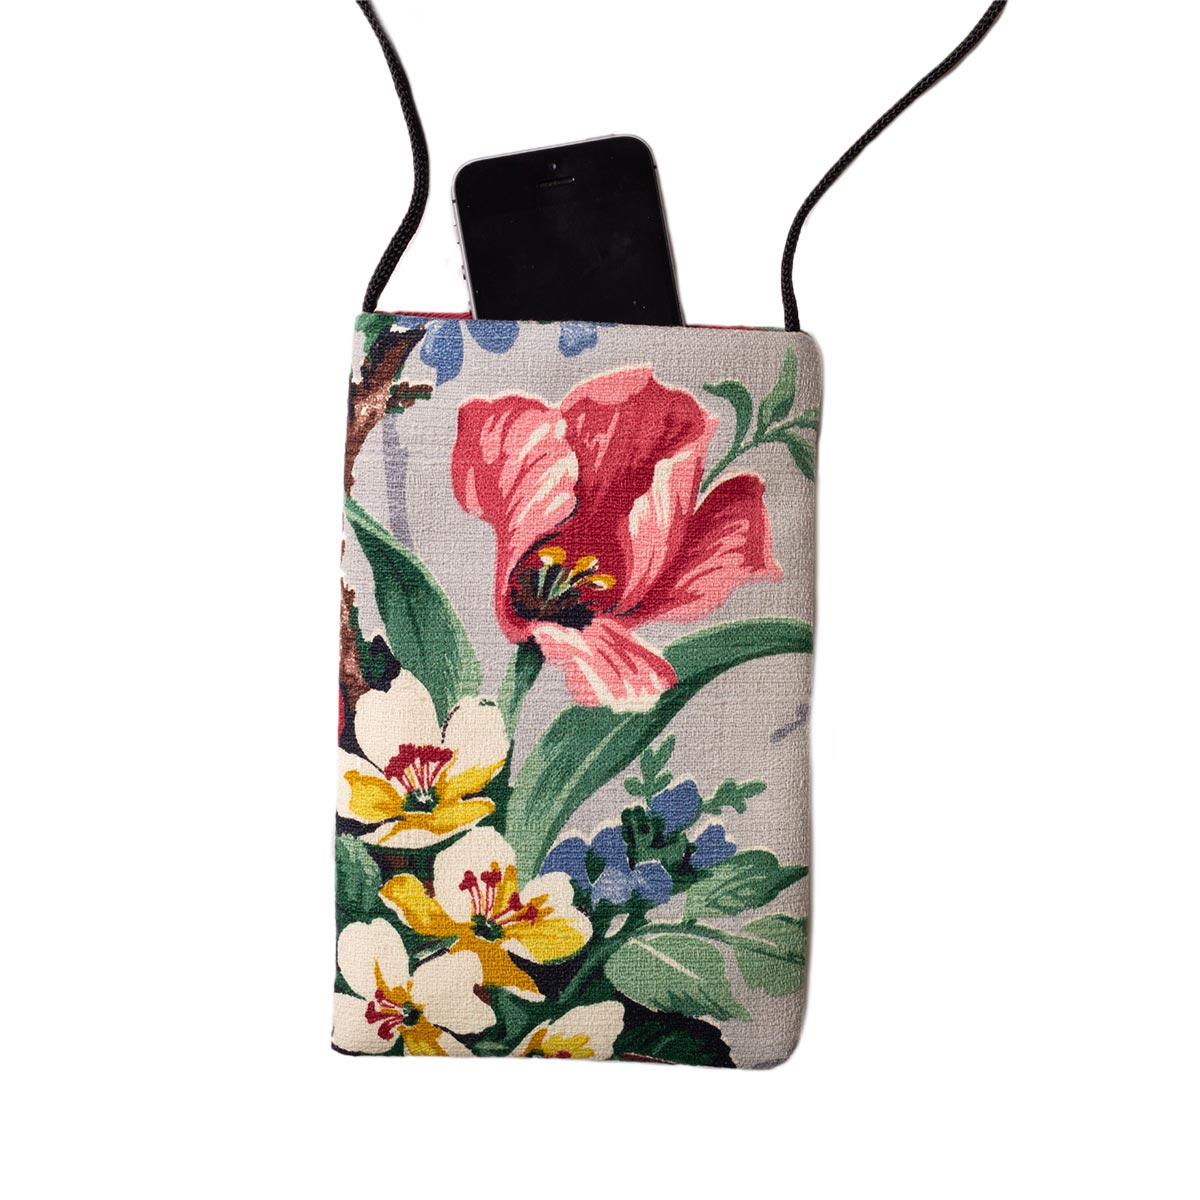 Cell Phone bag Floral Motif on Gray